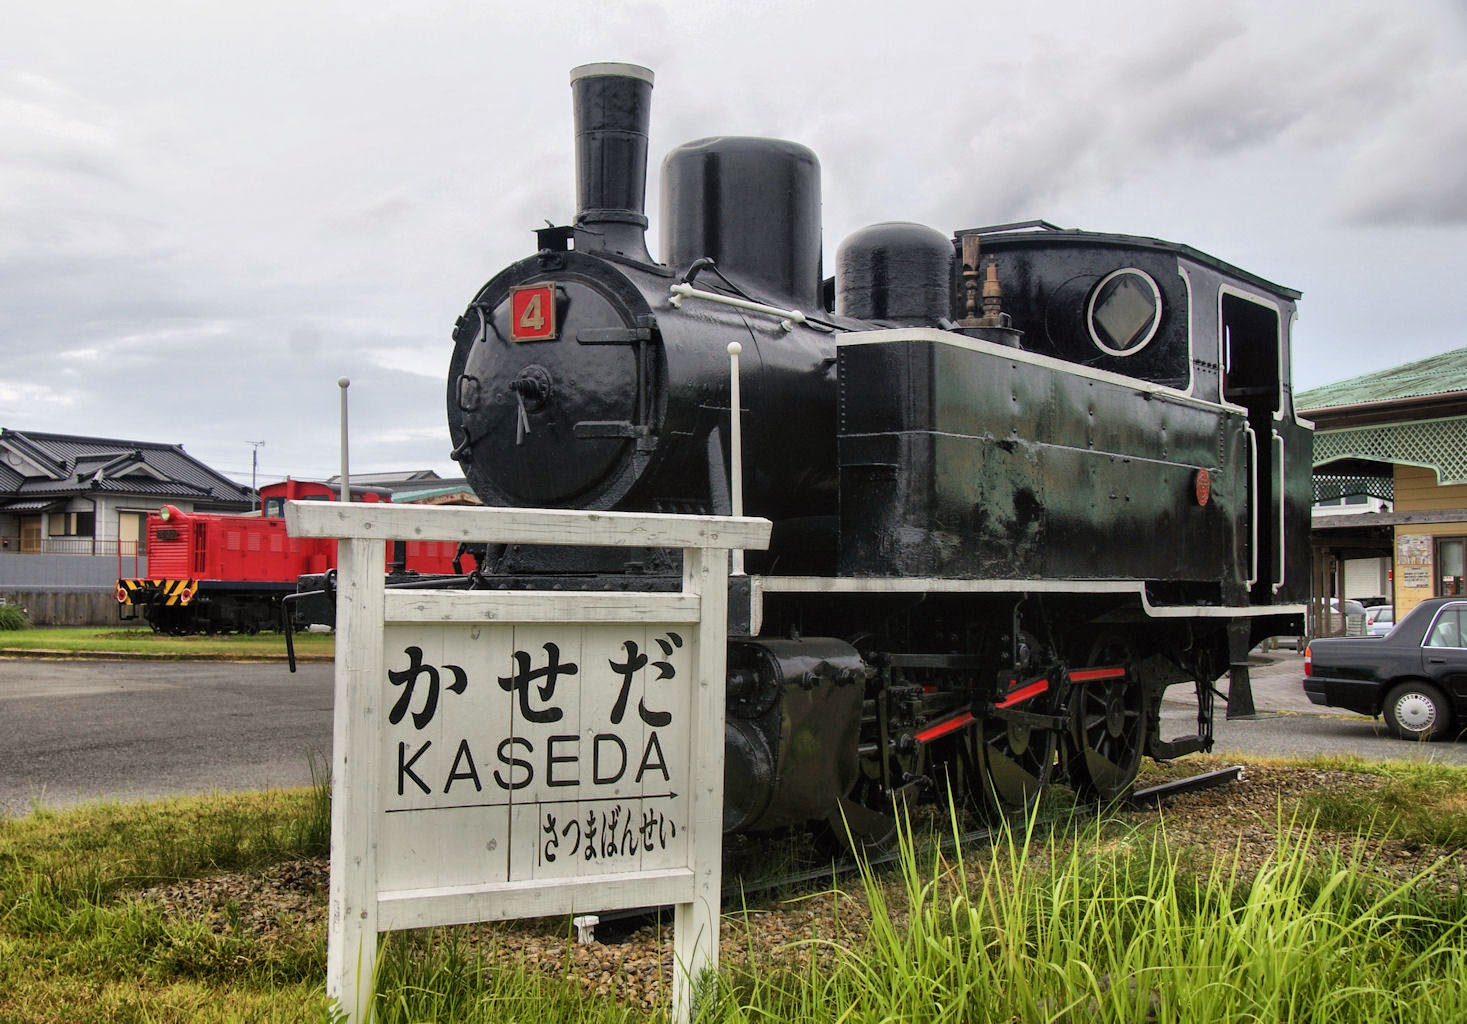 Kaseda steam locomotive